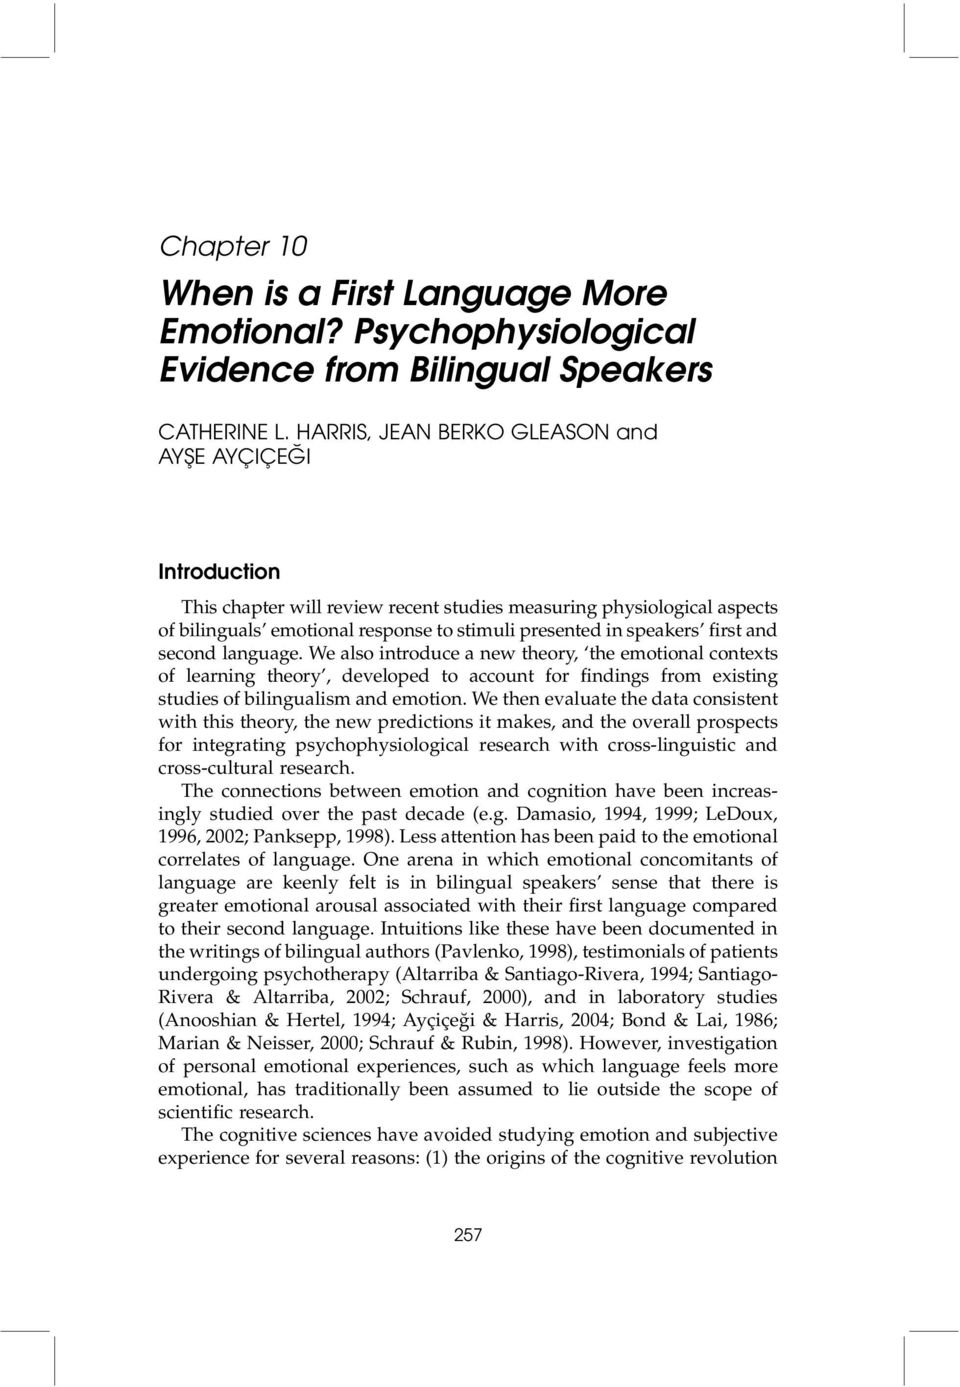 first and second language. We also introduce a new theory, the emotional contexts of learning theory, developed to account for findings from existing studies of bilingualism and emotion.